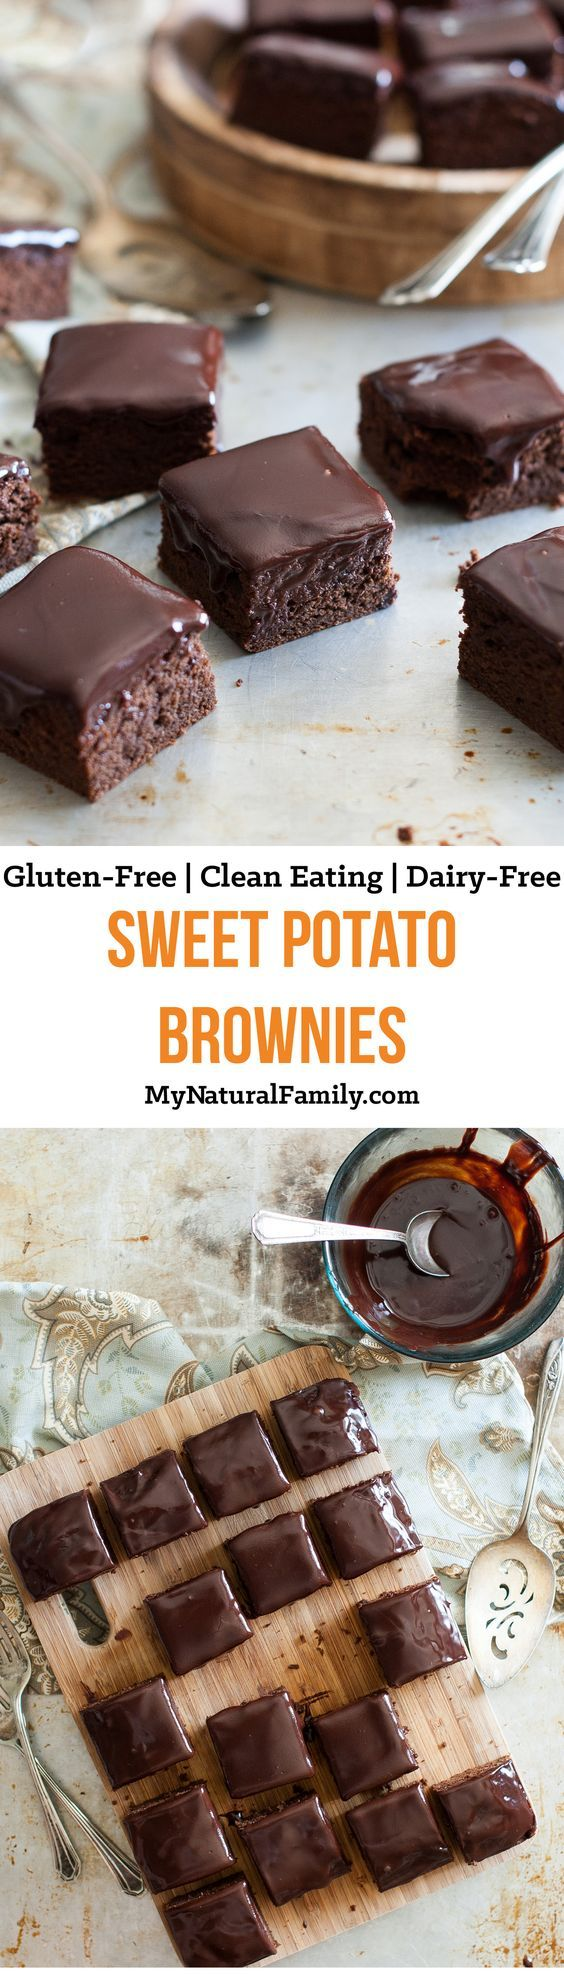 Sweet Potato Brownies Recipe {Clean Eating, Gluten-Free, Dairy-Free}